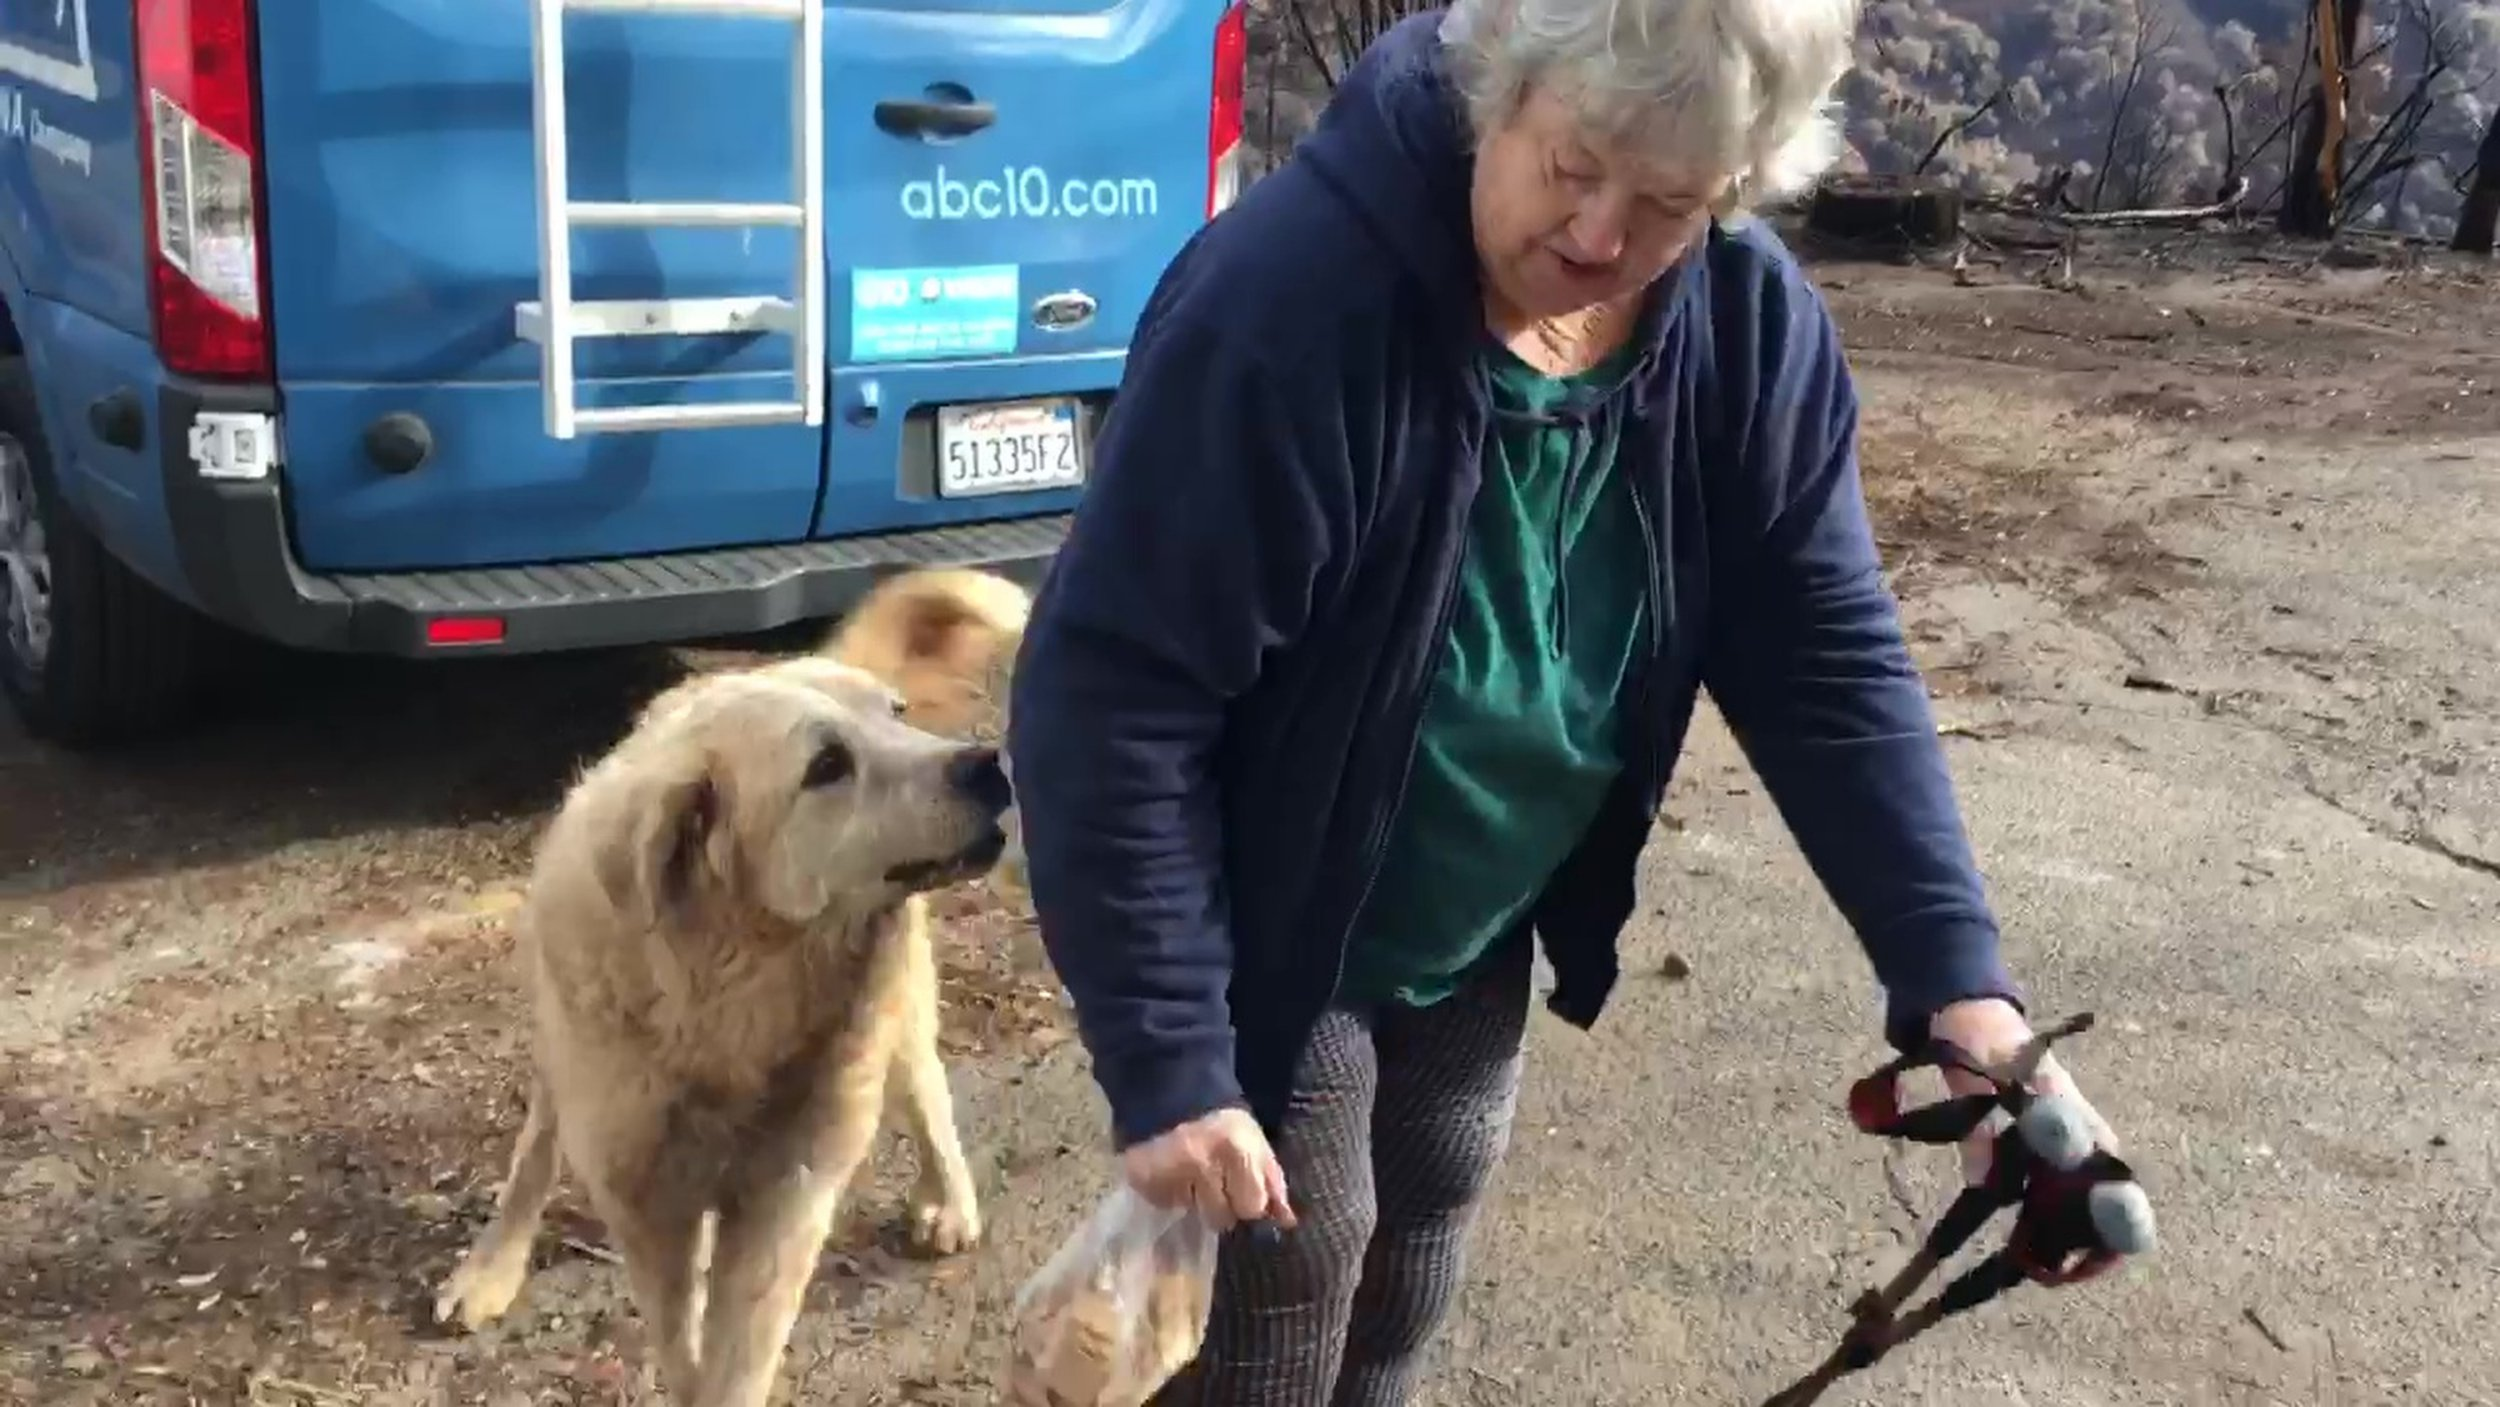 "In this Friday Dec. 7, 2018 image from video provided by Shayla Sullivan, ""Madison,"" the Anatolian shepherd dog that apparently guarded his burned home for nearly a month, greets his owner, Andrea Gaylord, as she was allowed back to check on her burned property in Paradise, Calif. Sullivan, an animal rescuer, left food and water for Madison during his wait. Gaylord fled when the Nov. 8 fire destroyed the town of 27,000. (Shayla Sullivan via AP)"